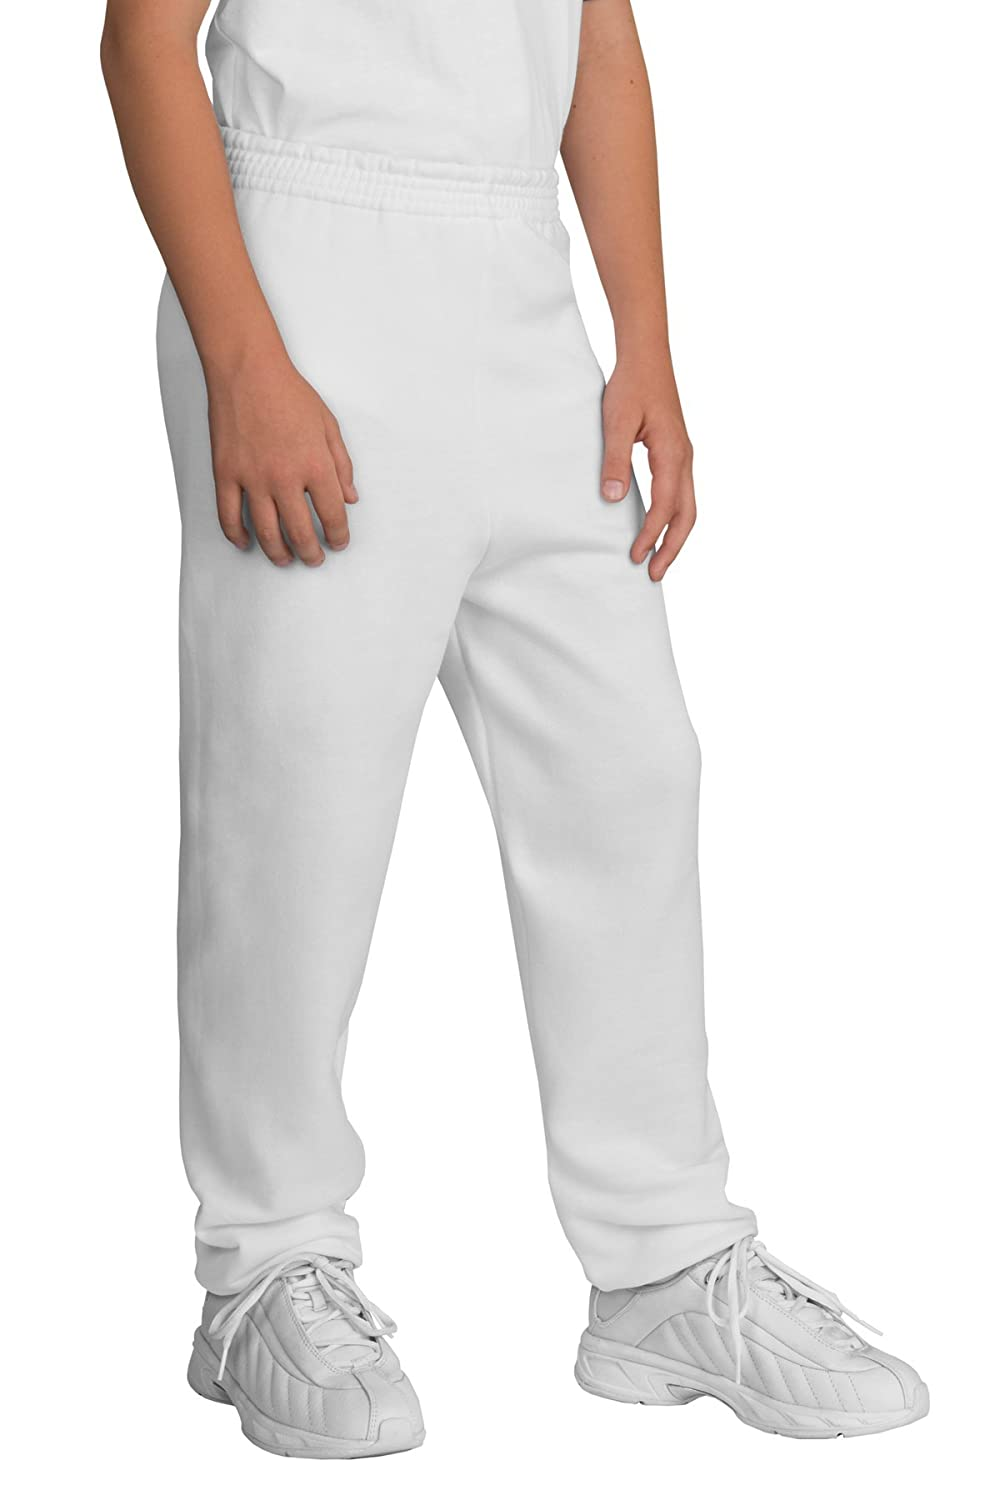 Port & Company - Youth Sweatpant. PC90YP